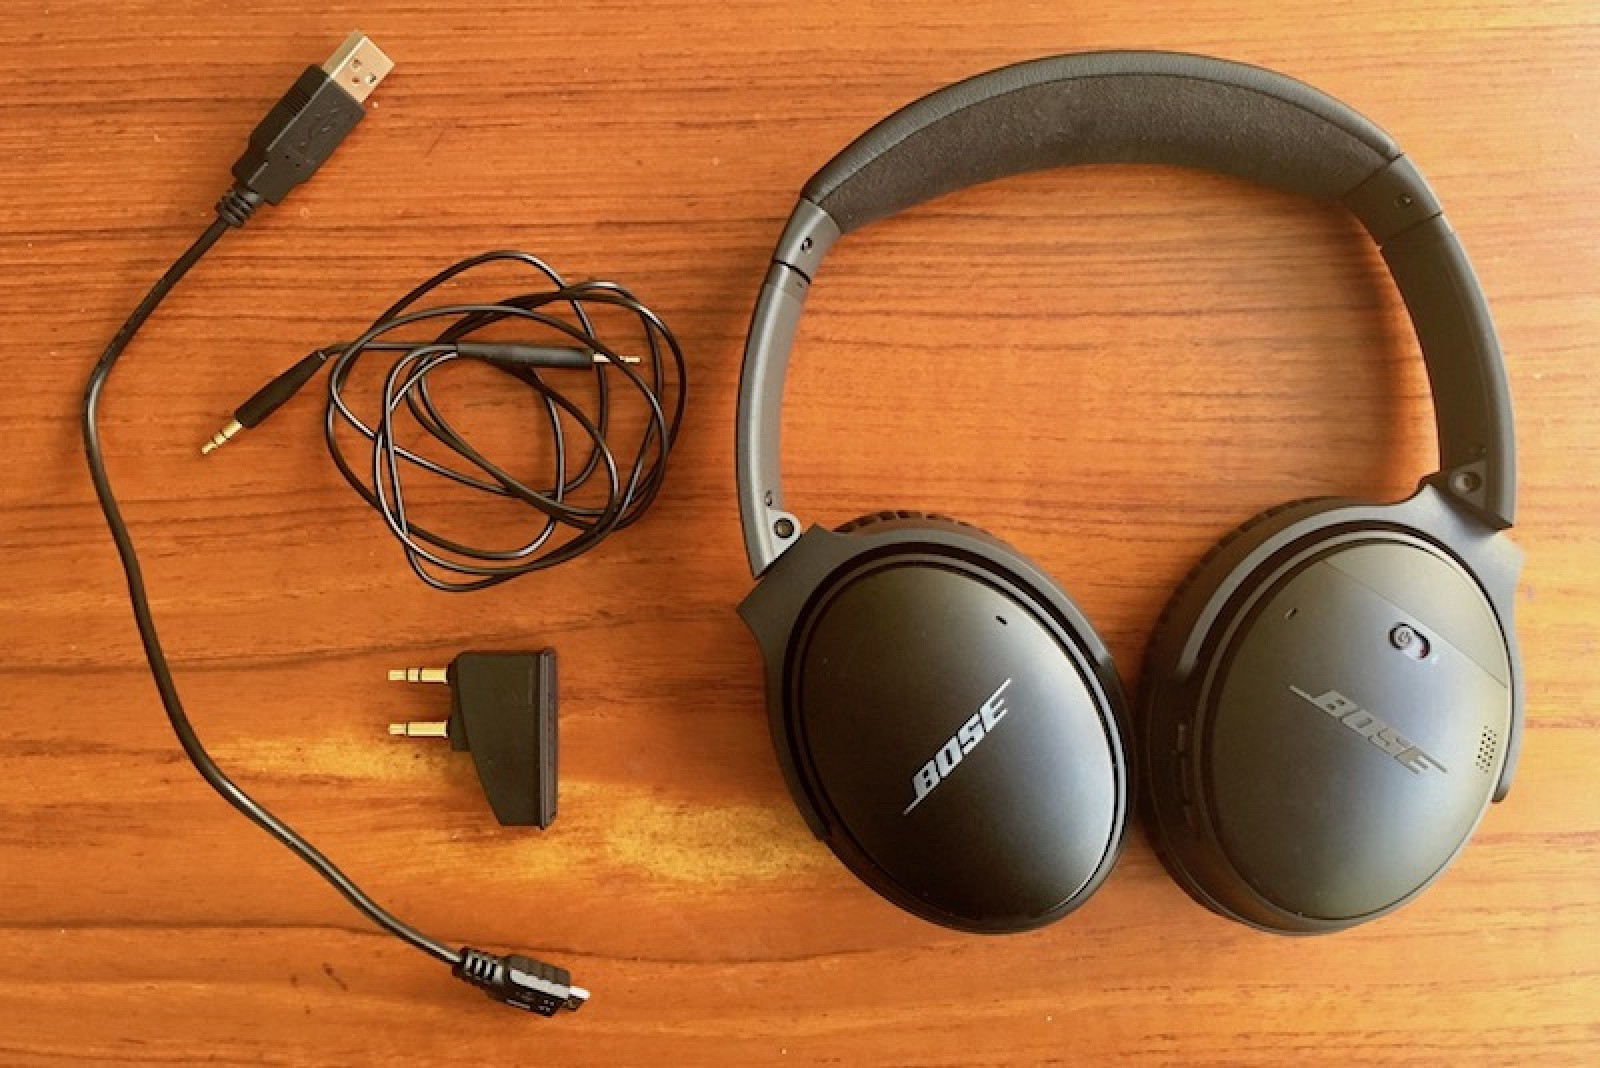 low priced f8a30 a766f Review: QuietComfort 35 Headphones Prove Bose Won't Miss the ...